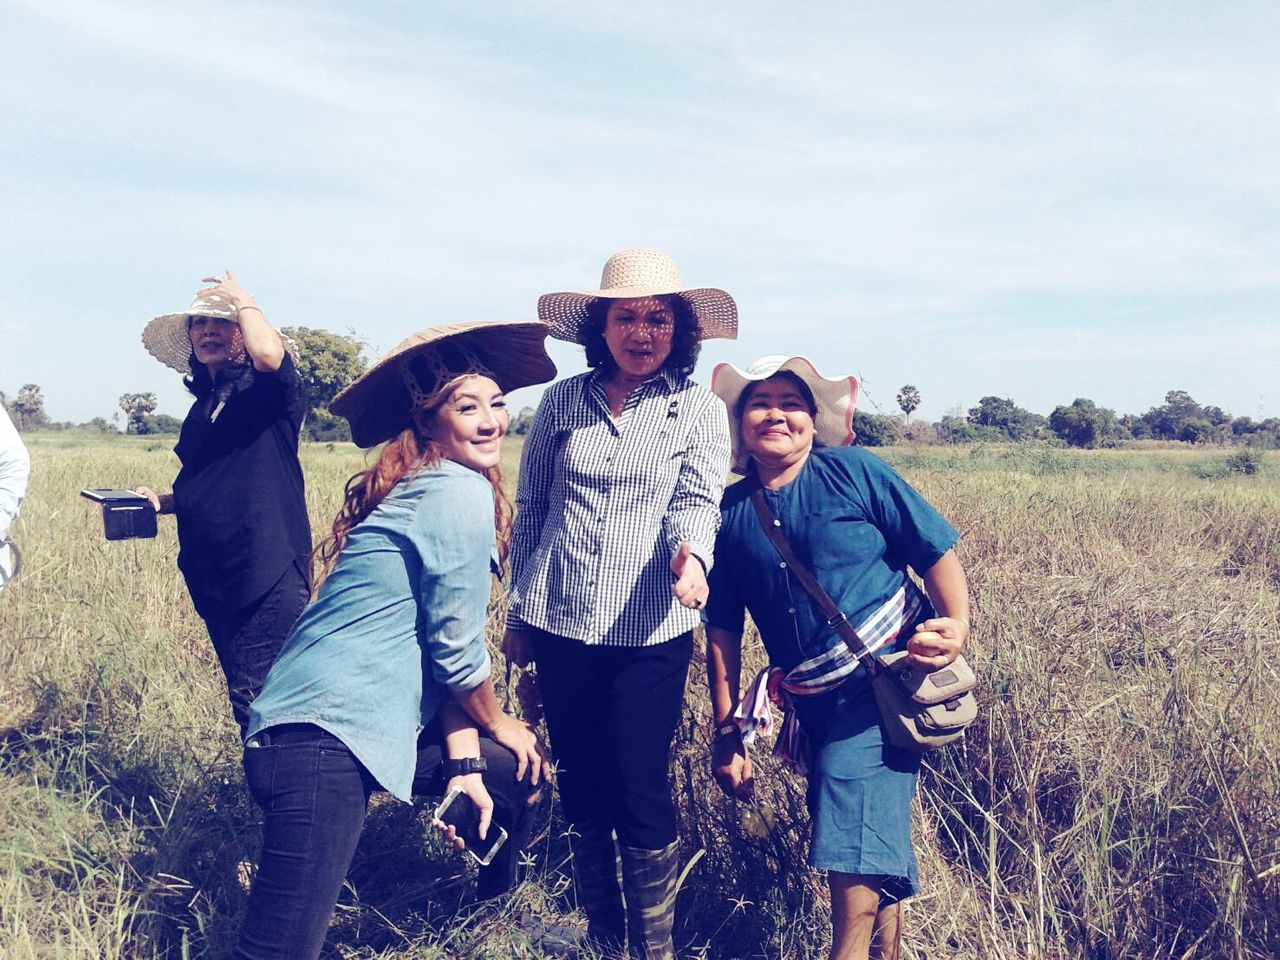 hat, casual clothing, friendship, togetherness, young adult, portrait, happiness, cowboy hat, real people, looking at camera, smiling, leisure activity, young women, field, outdoors, front view, day, standing, young men, lifestyles, sky, cheerful, nature, group of people, grass, landscape, adventure, bonding, men, wild west, adult, people